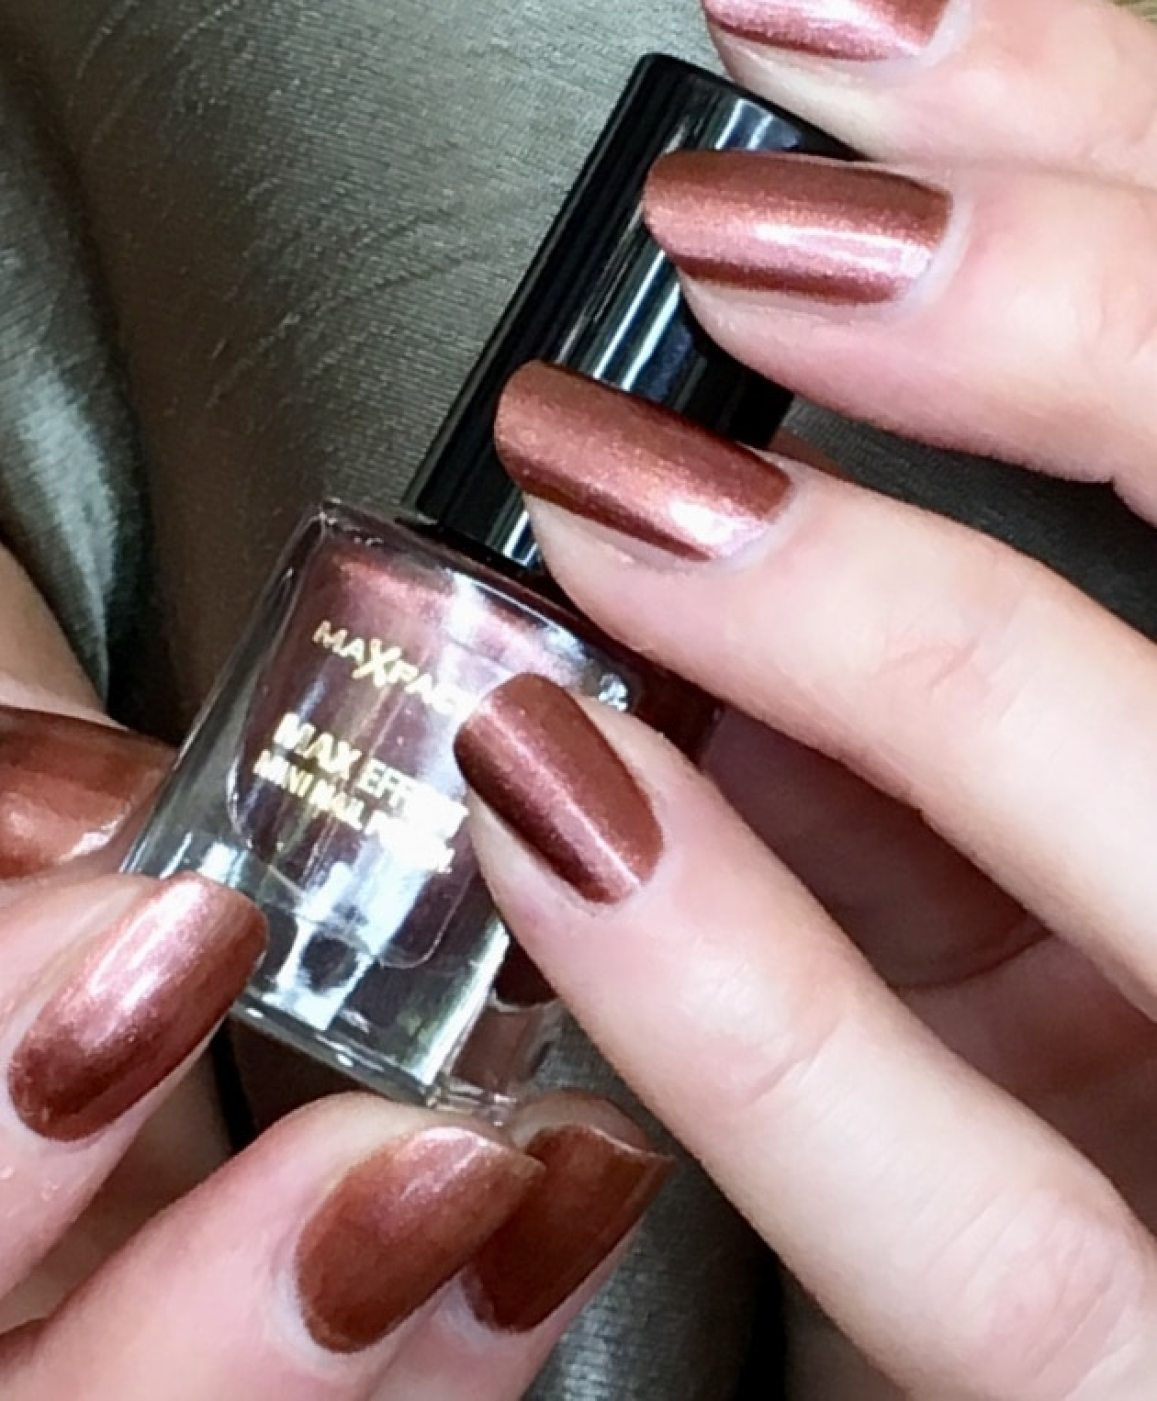 samatha's nails painted in max factor red bronze 03